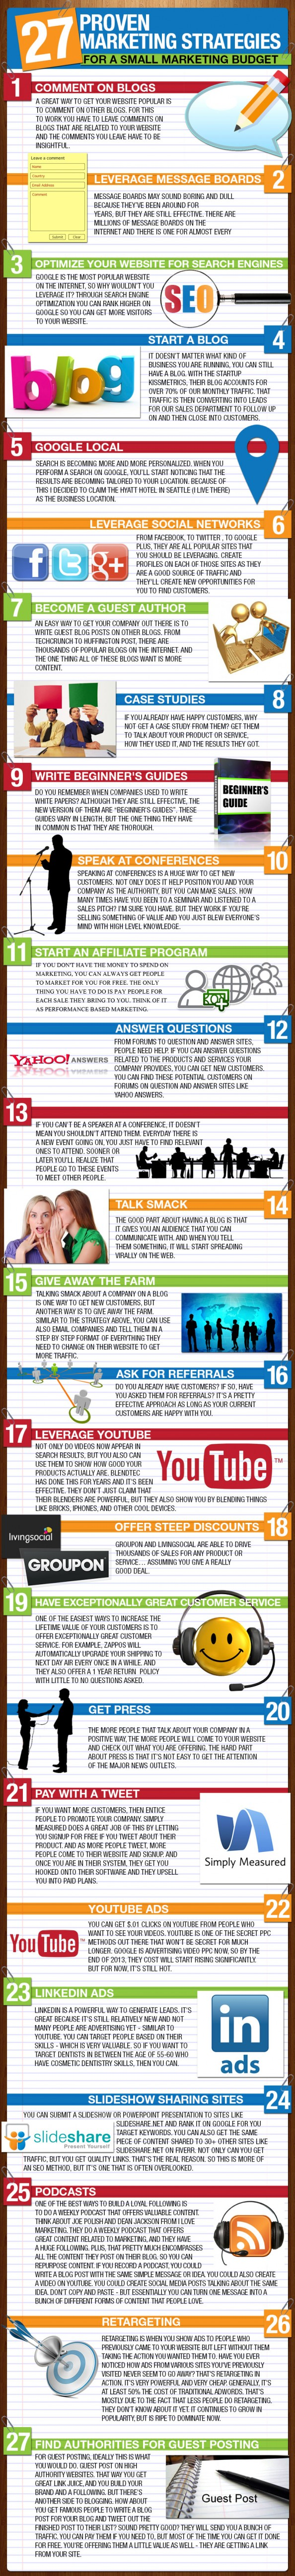 27 Proven Marketing Strategies to Double Your Traffic in Under 30 Days [Infographic] #socialmedia #strategy #marketing